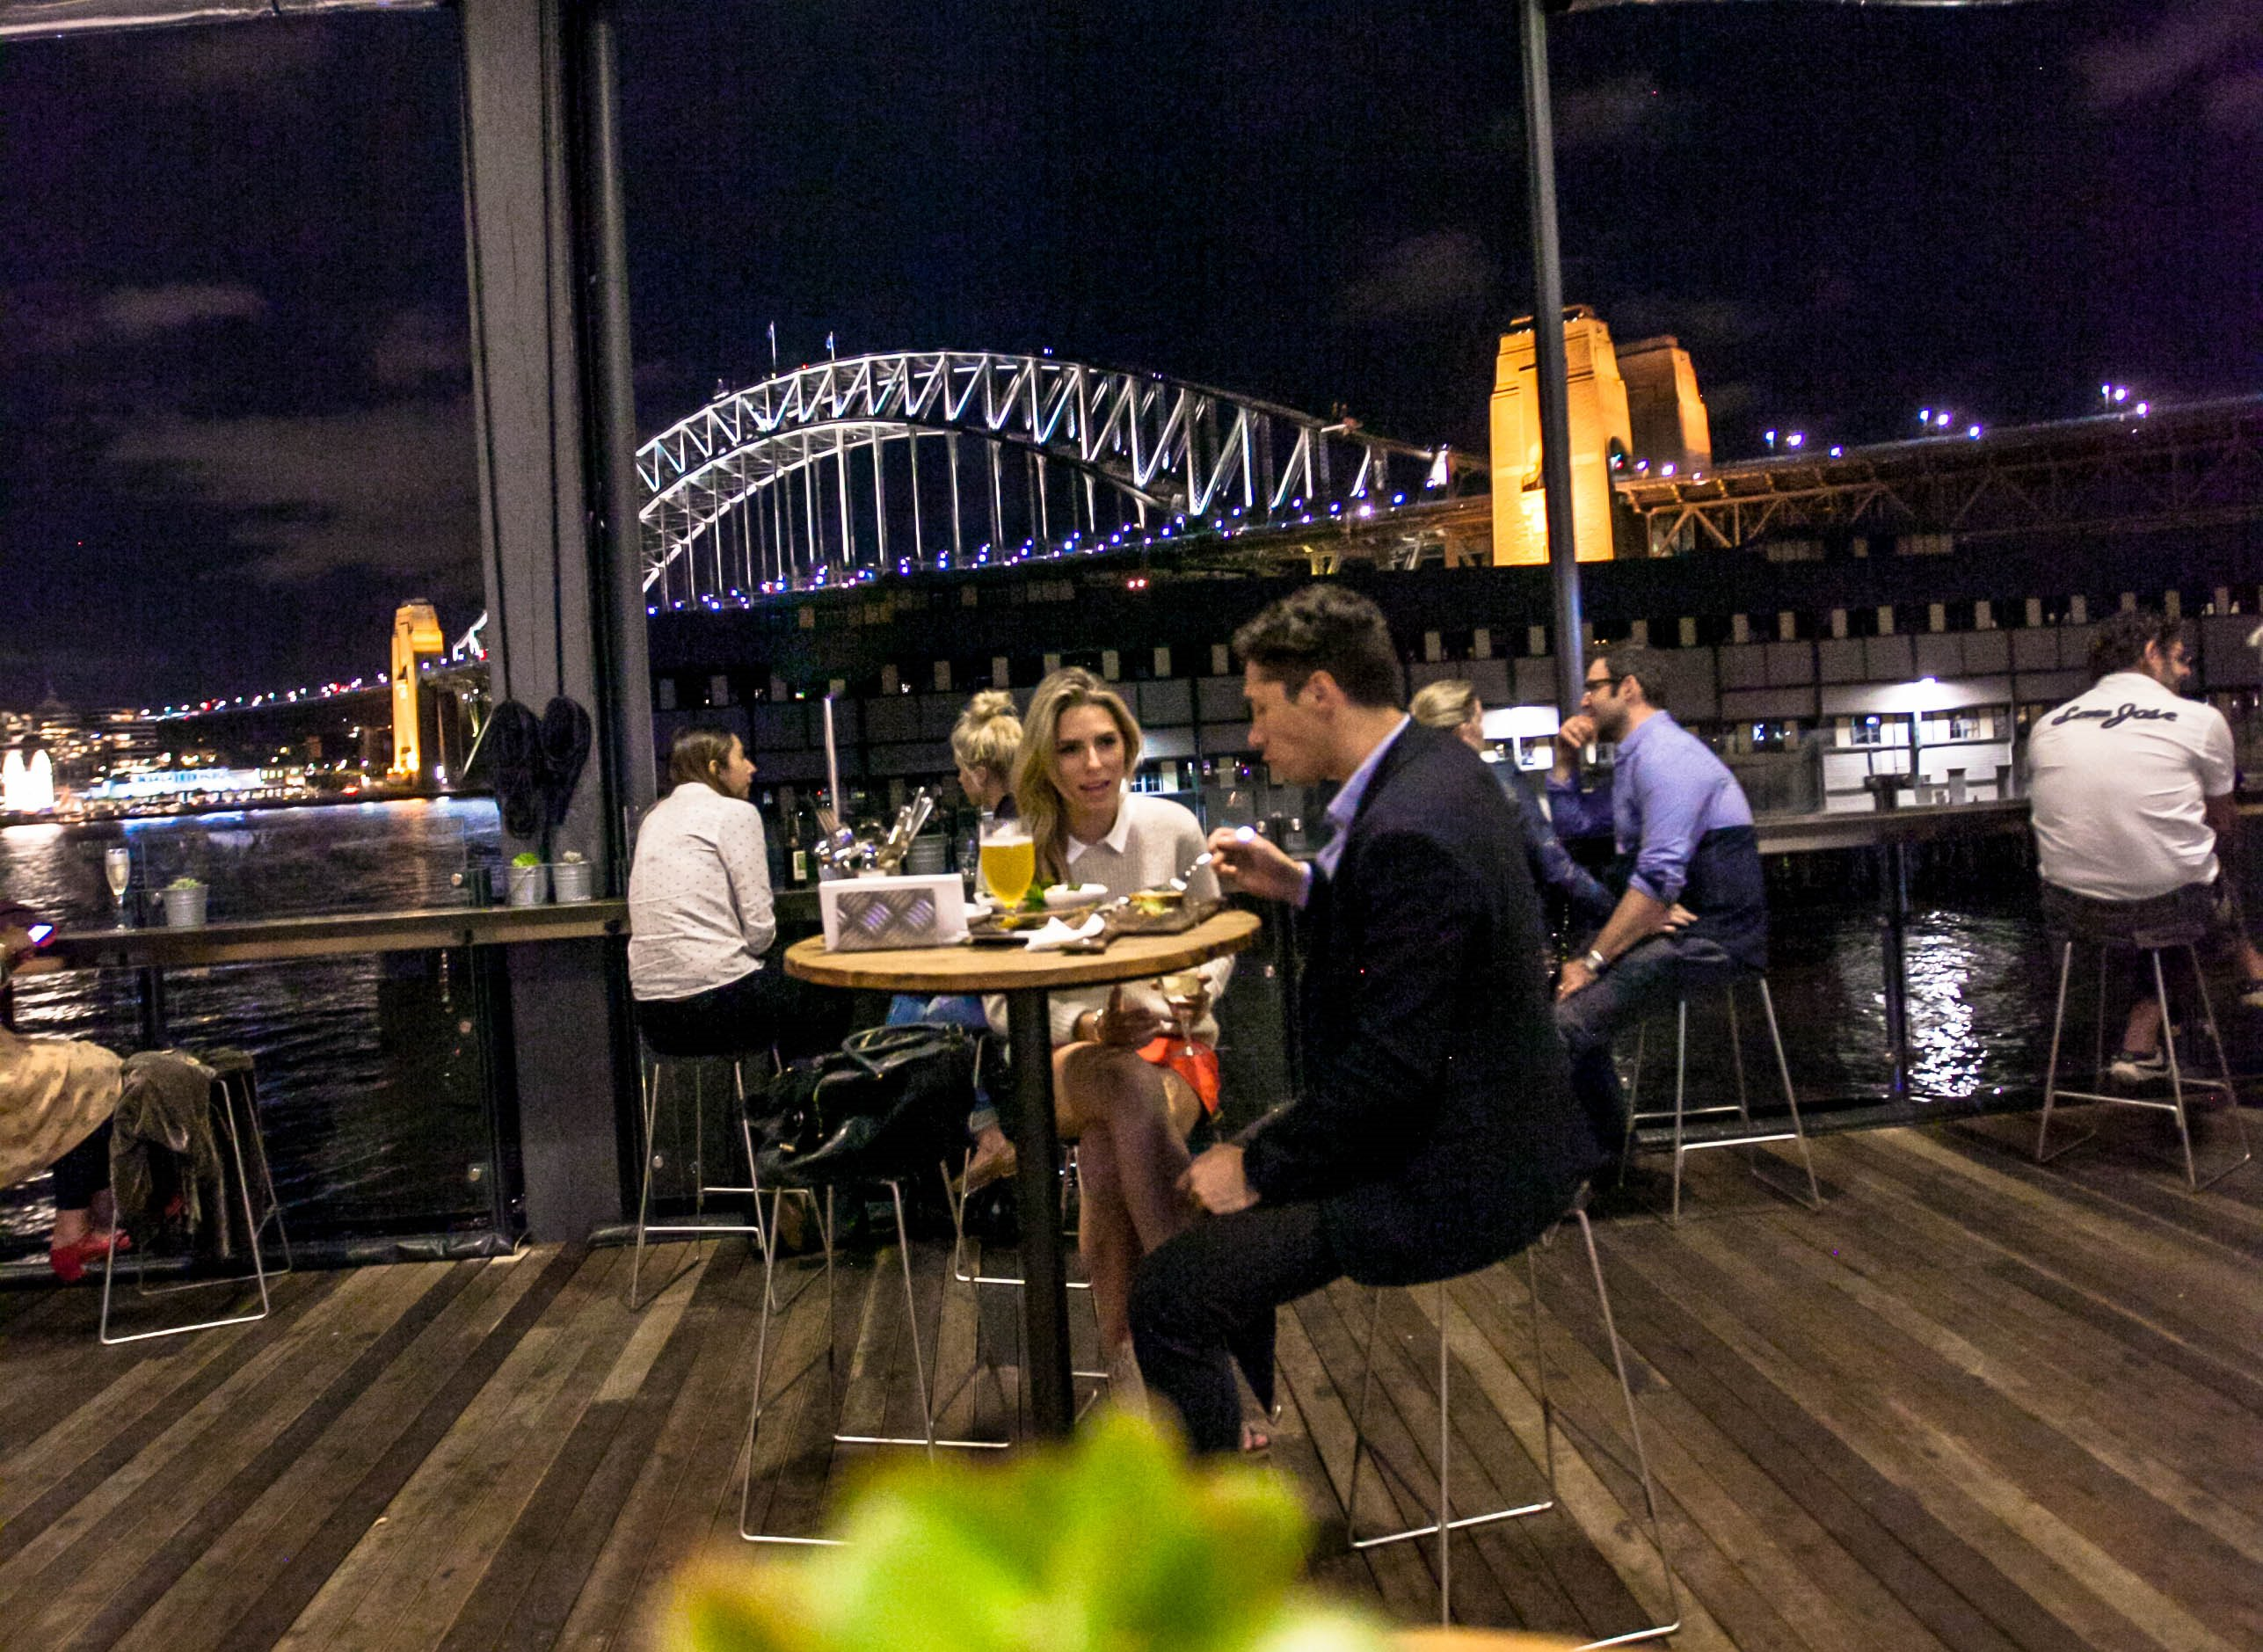 Vivid Festival, The Theatre Bar at the End of the Wharf